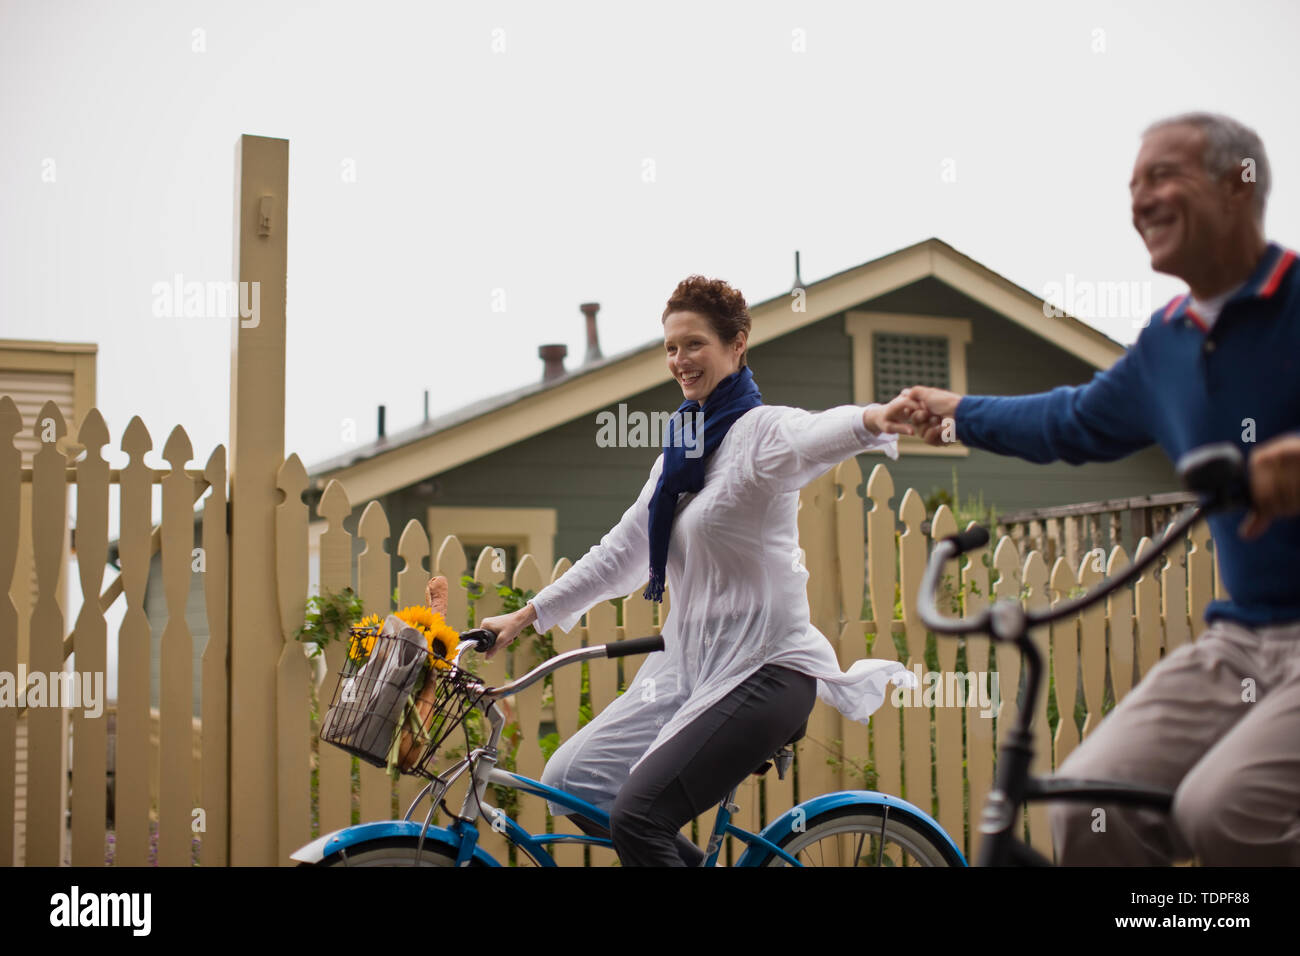 Couple riding bikes together - Stock Image